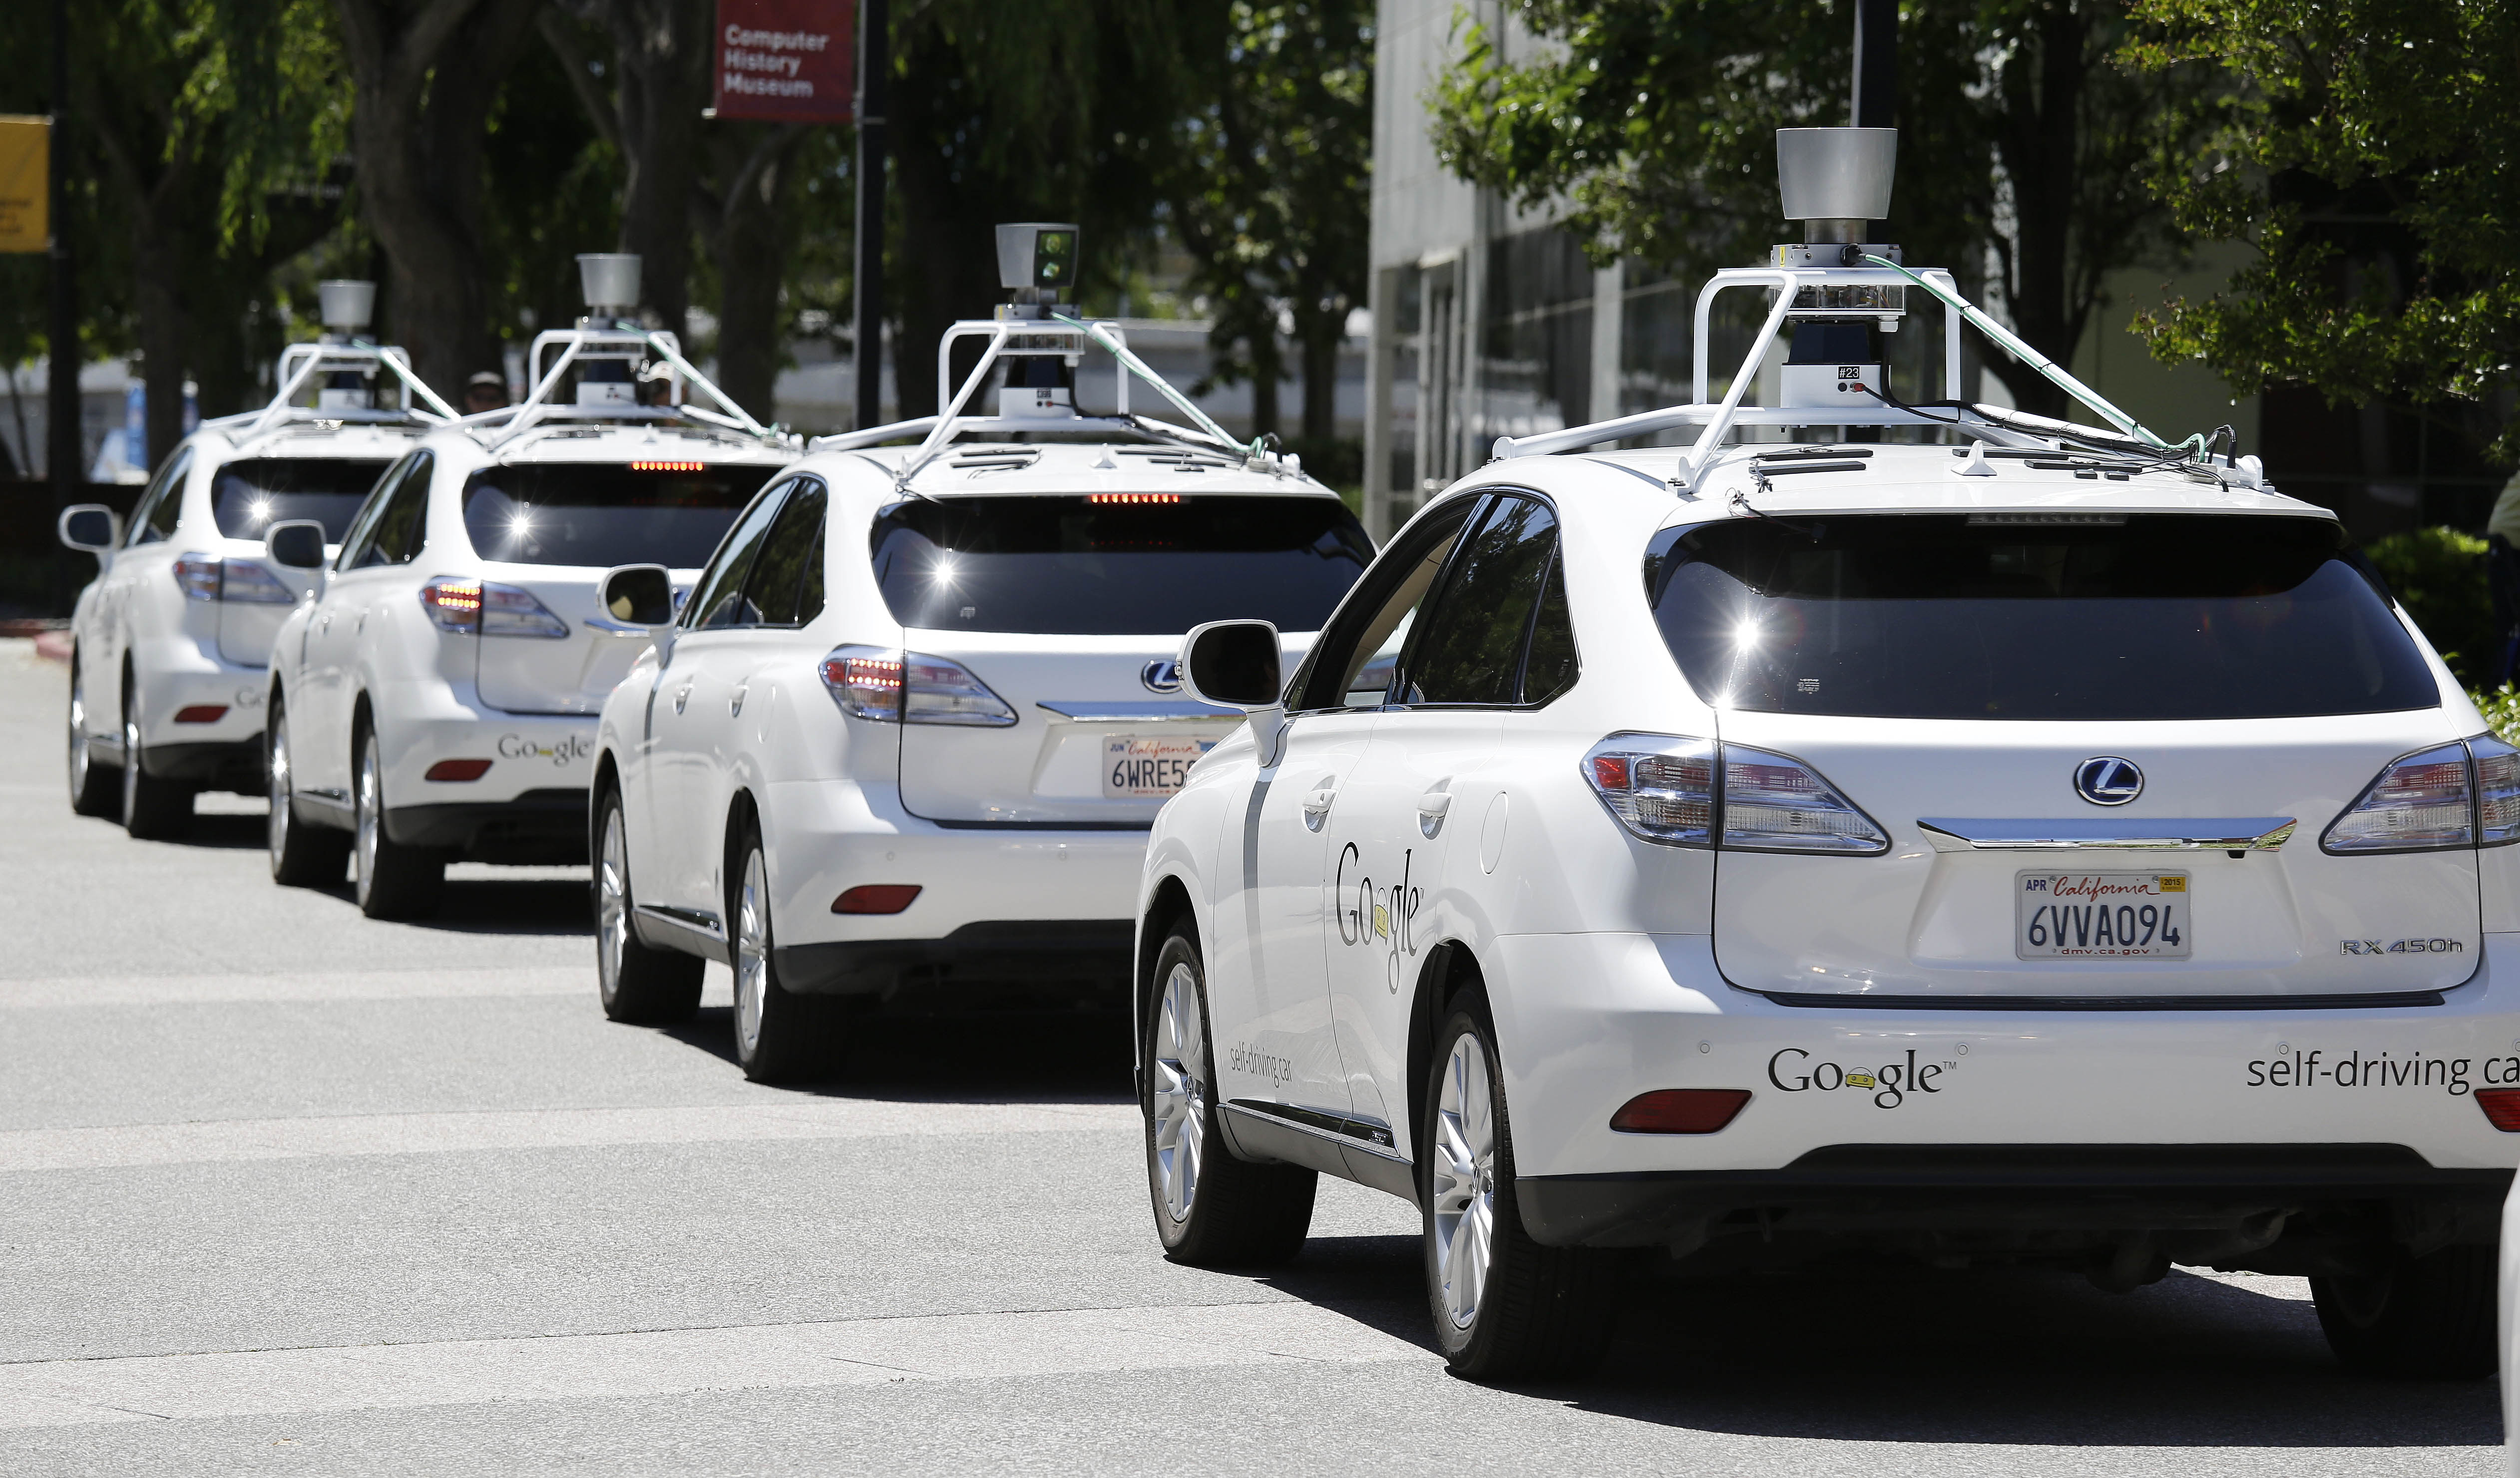 California now offers permits for Self-driving cars (AP Photo/Eric Risberg, File)